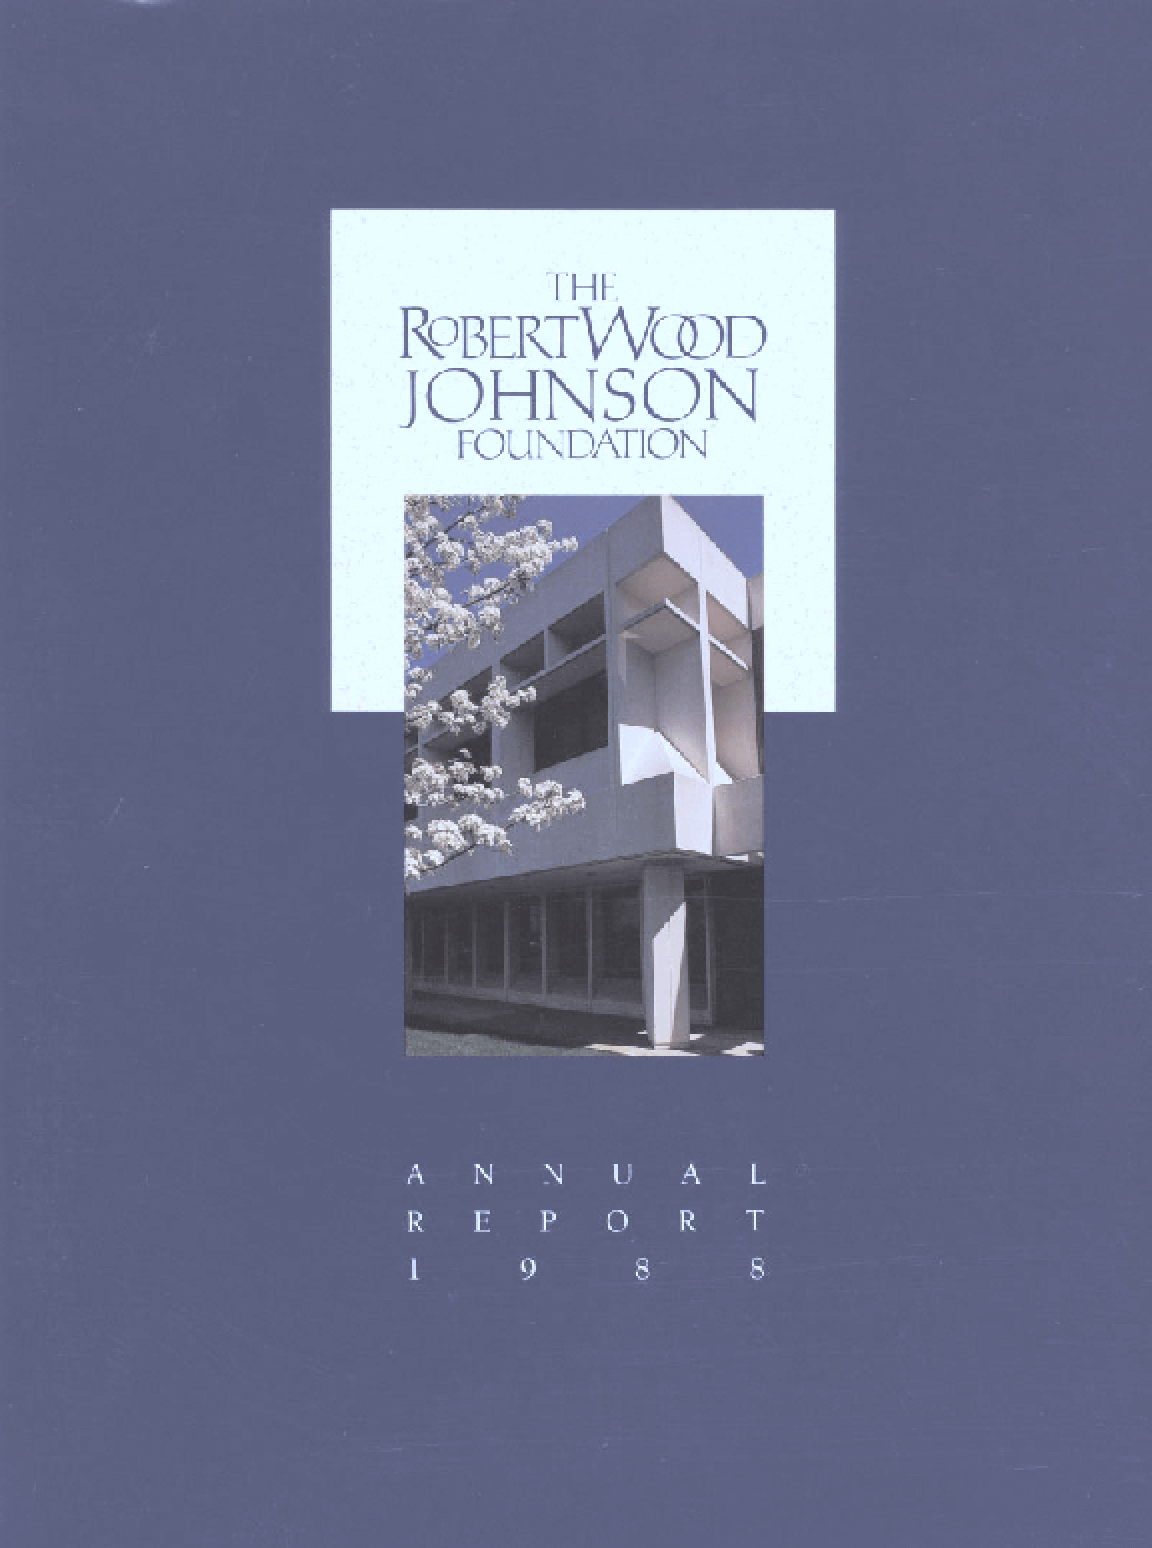 Robert Wood Johnson Foundation - 1988 Annual Report